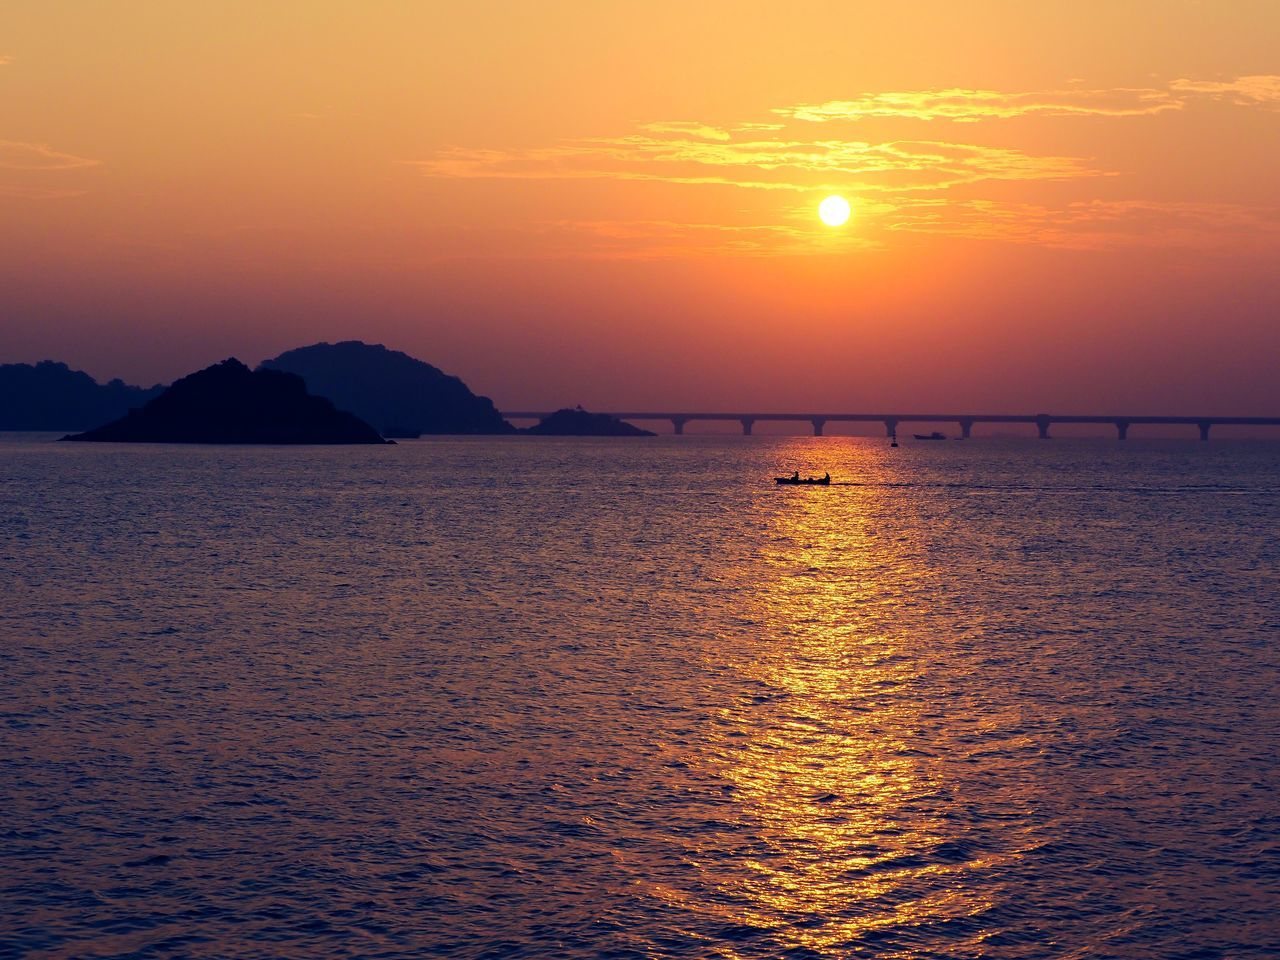 The Last Sunrise 2016 Sunrise Sea Beauty In Nature Water Scenics Nature Tranquil Scene Tranquility Orange Color Idyllic Waterfront Sun Silhouette Outdoors Sky No People Mountain Sea View Bridge Sea_collection Zhuhai China Seascape Beauty In Nature Horizon Over Water